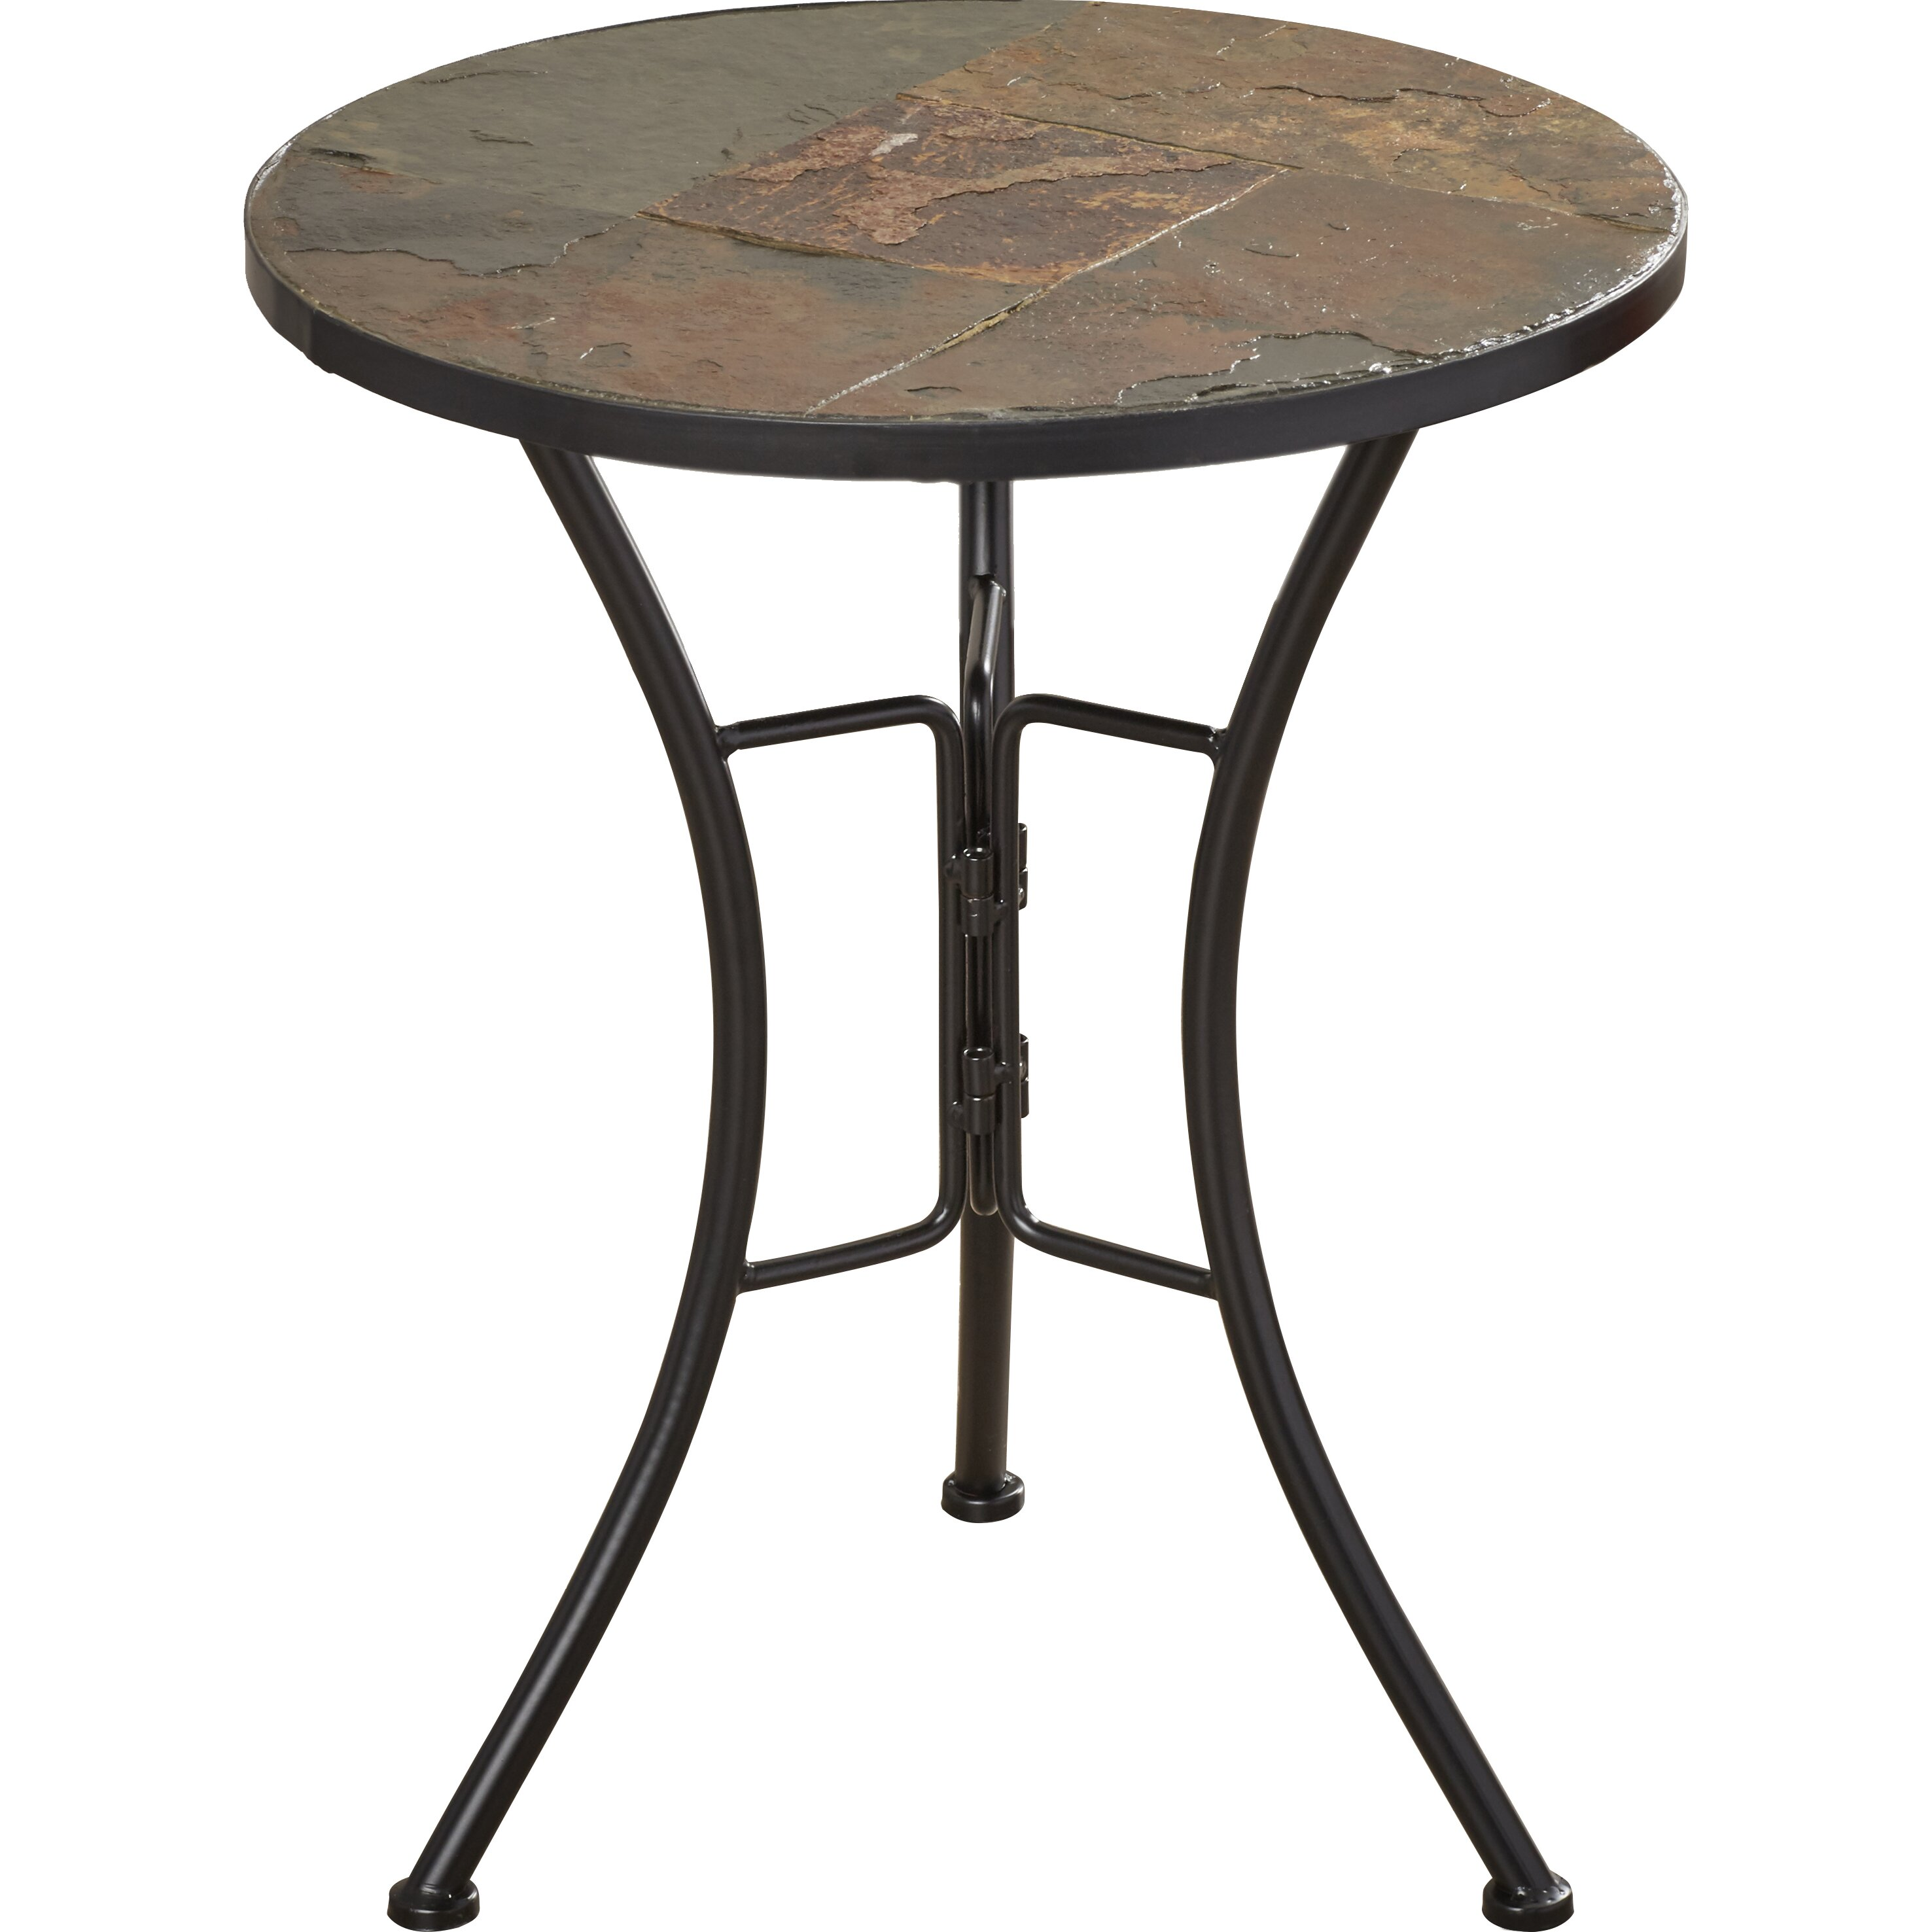 Alcott Hill Barker Ridge Slate Round Top Coffee Table Reviews